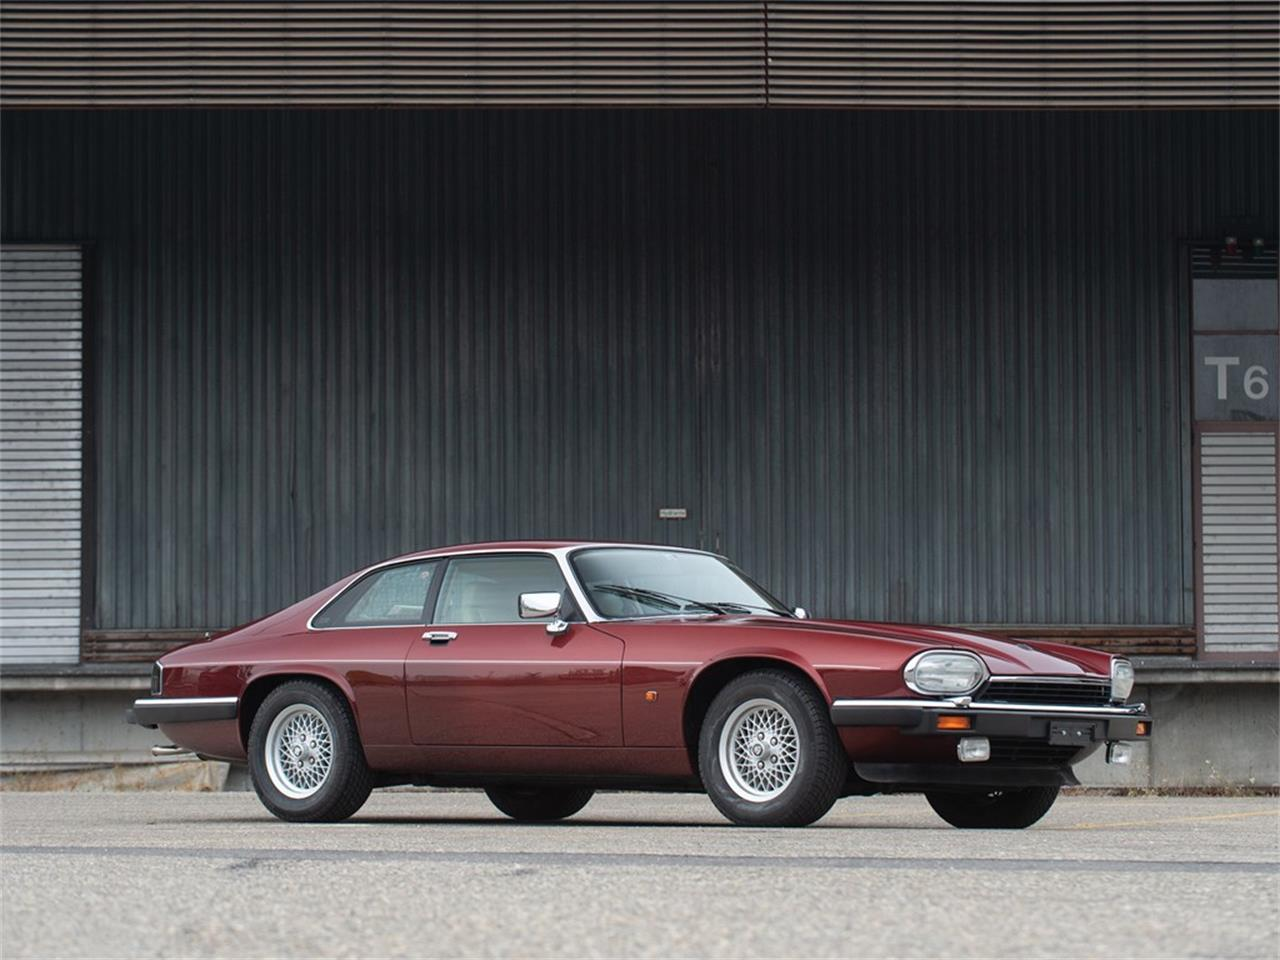 1991 Jaguar XJS for sale in Essen, Other